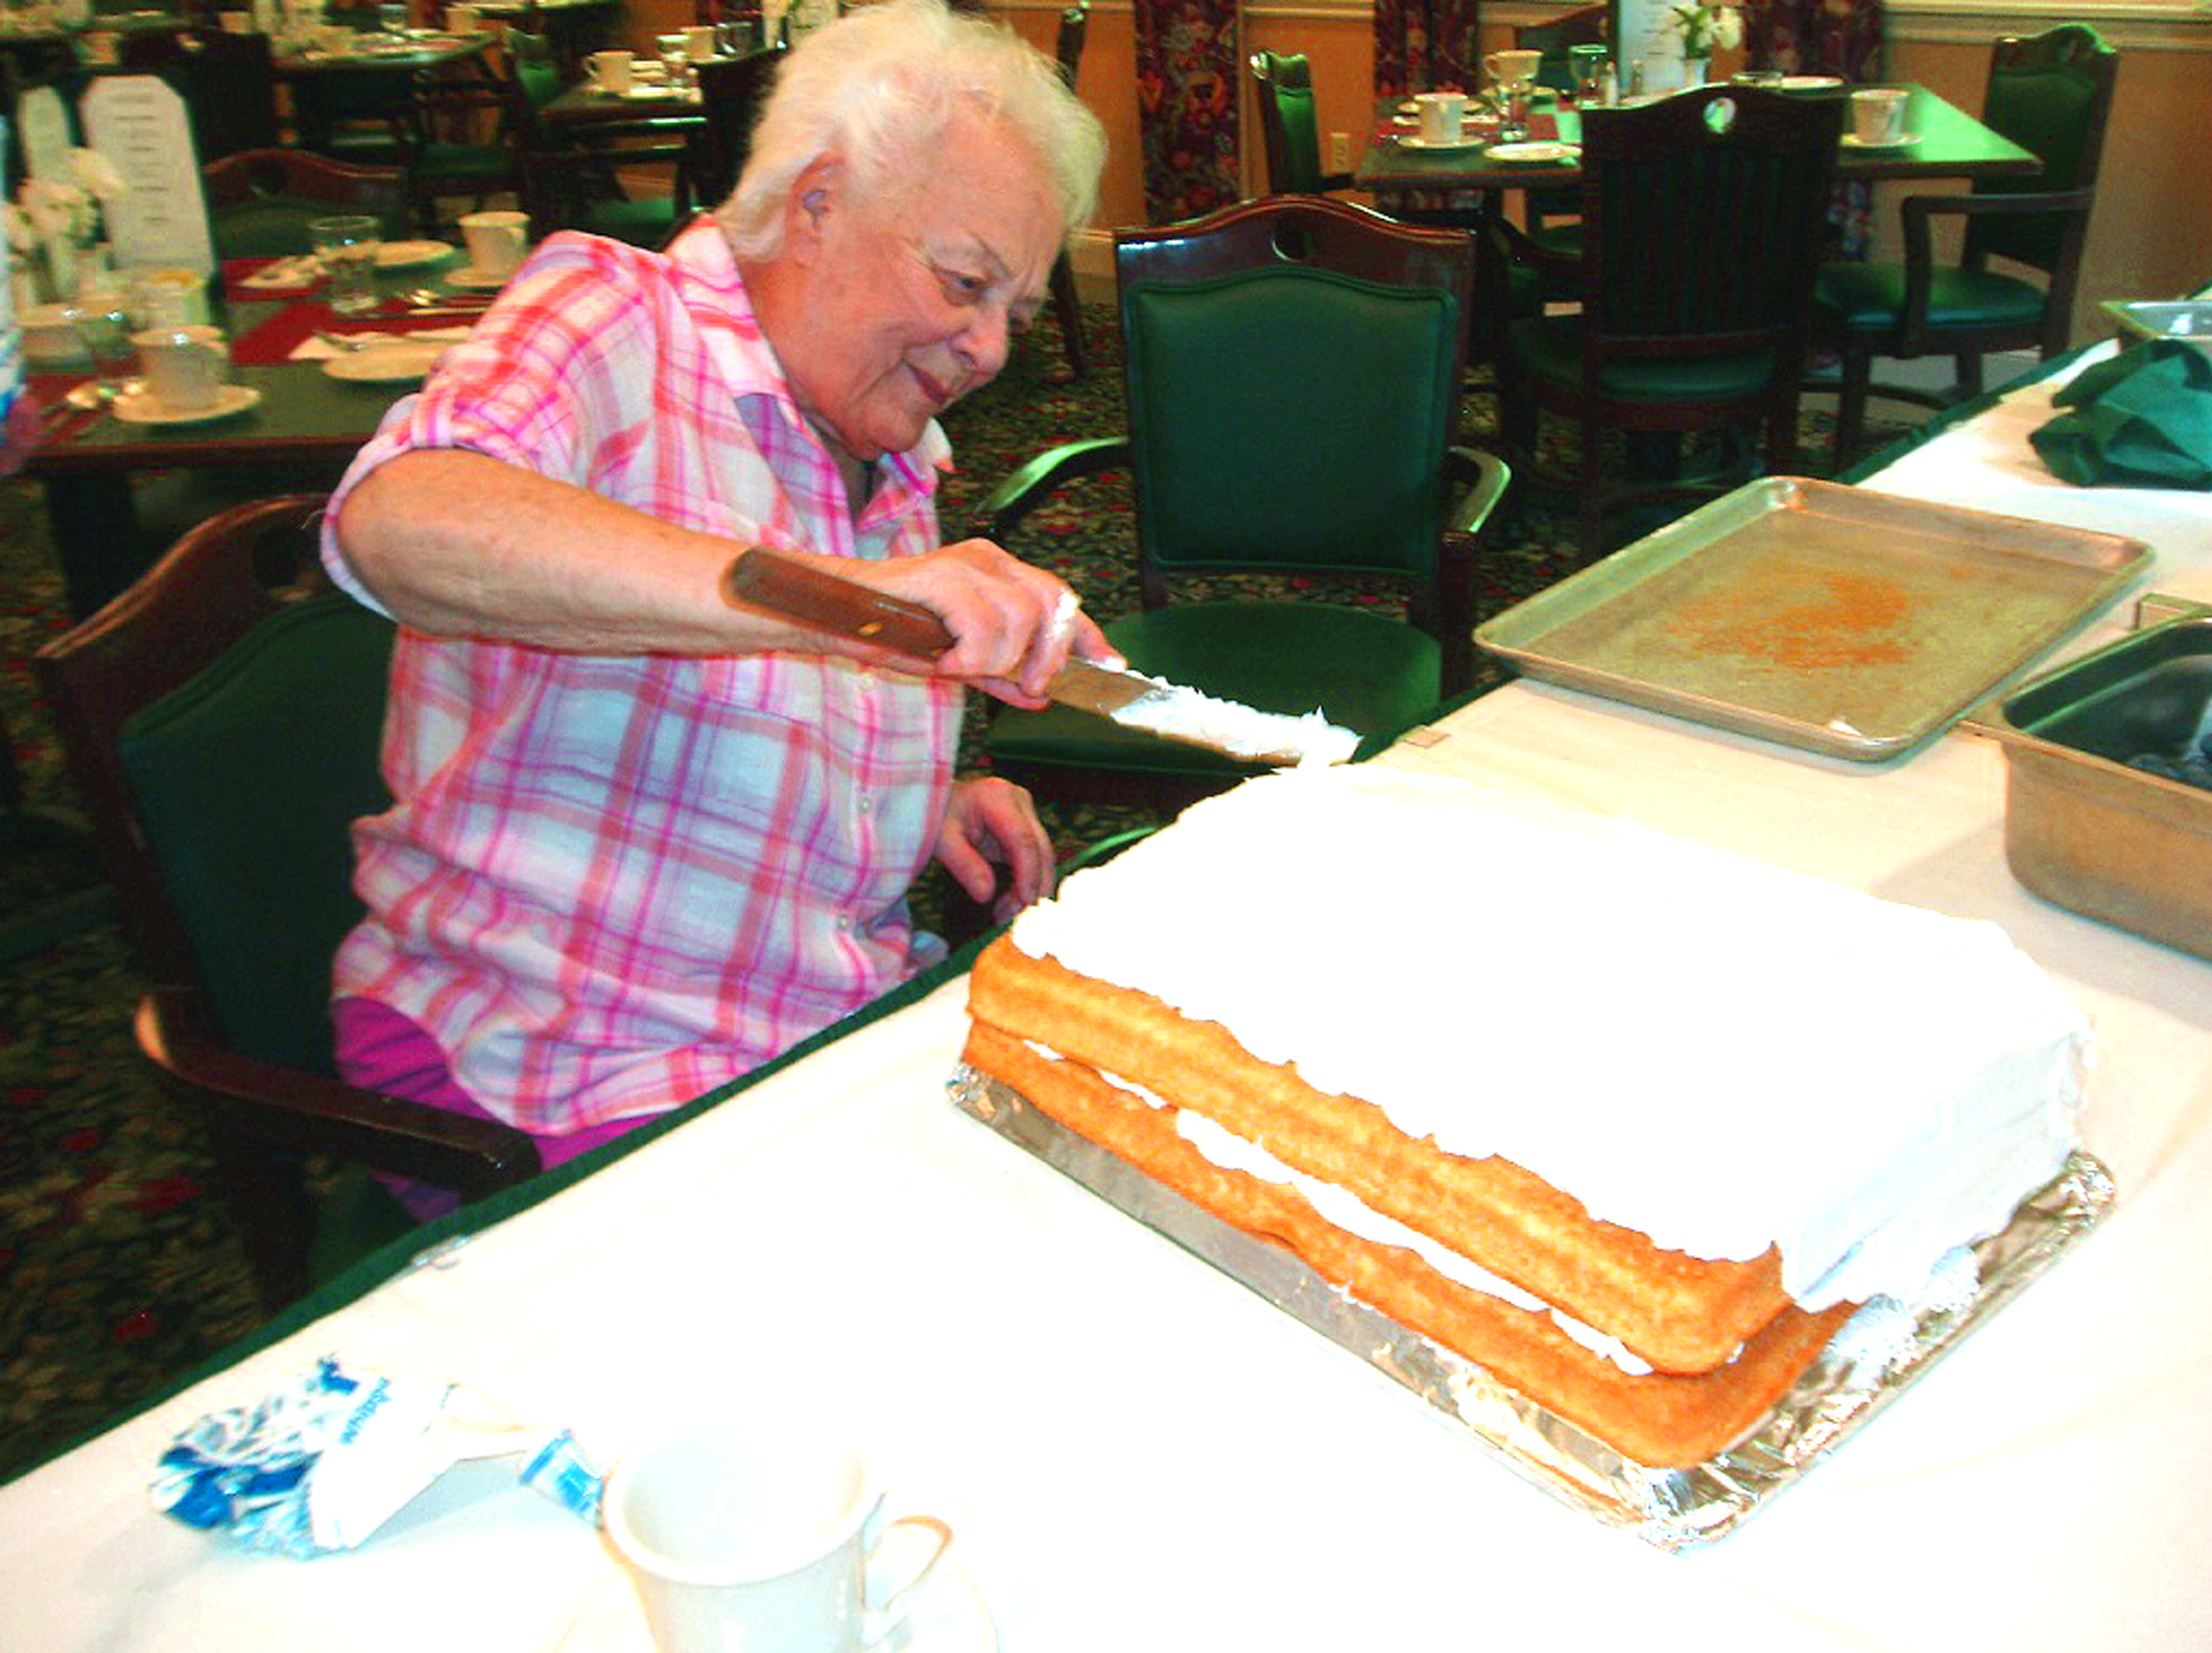 Atria Kennebunk resident Irene LeClerc works on a cake for residents on Flag Day. SUBMITTED PHOTO